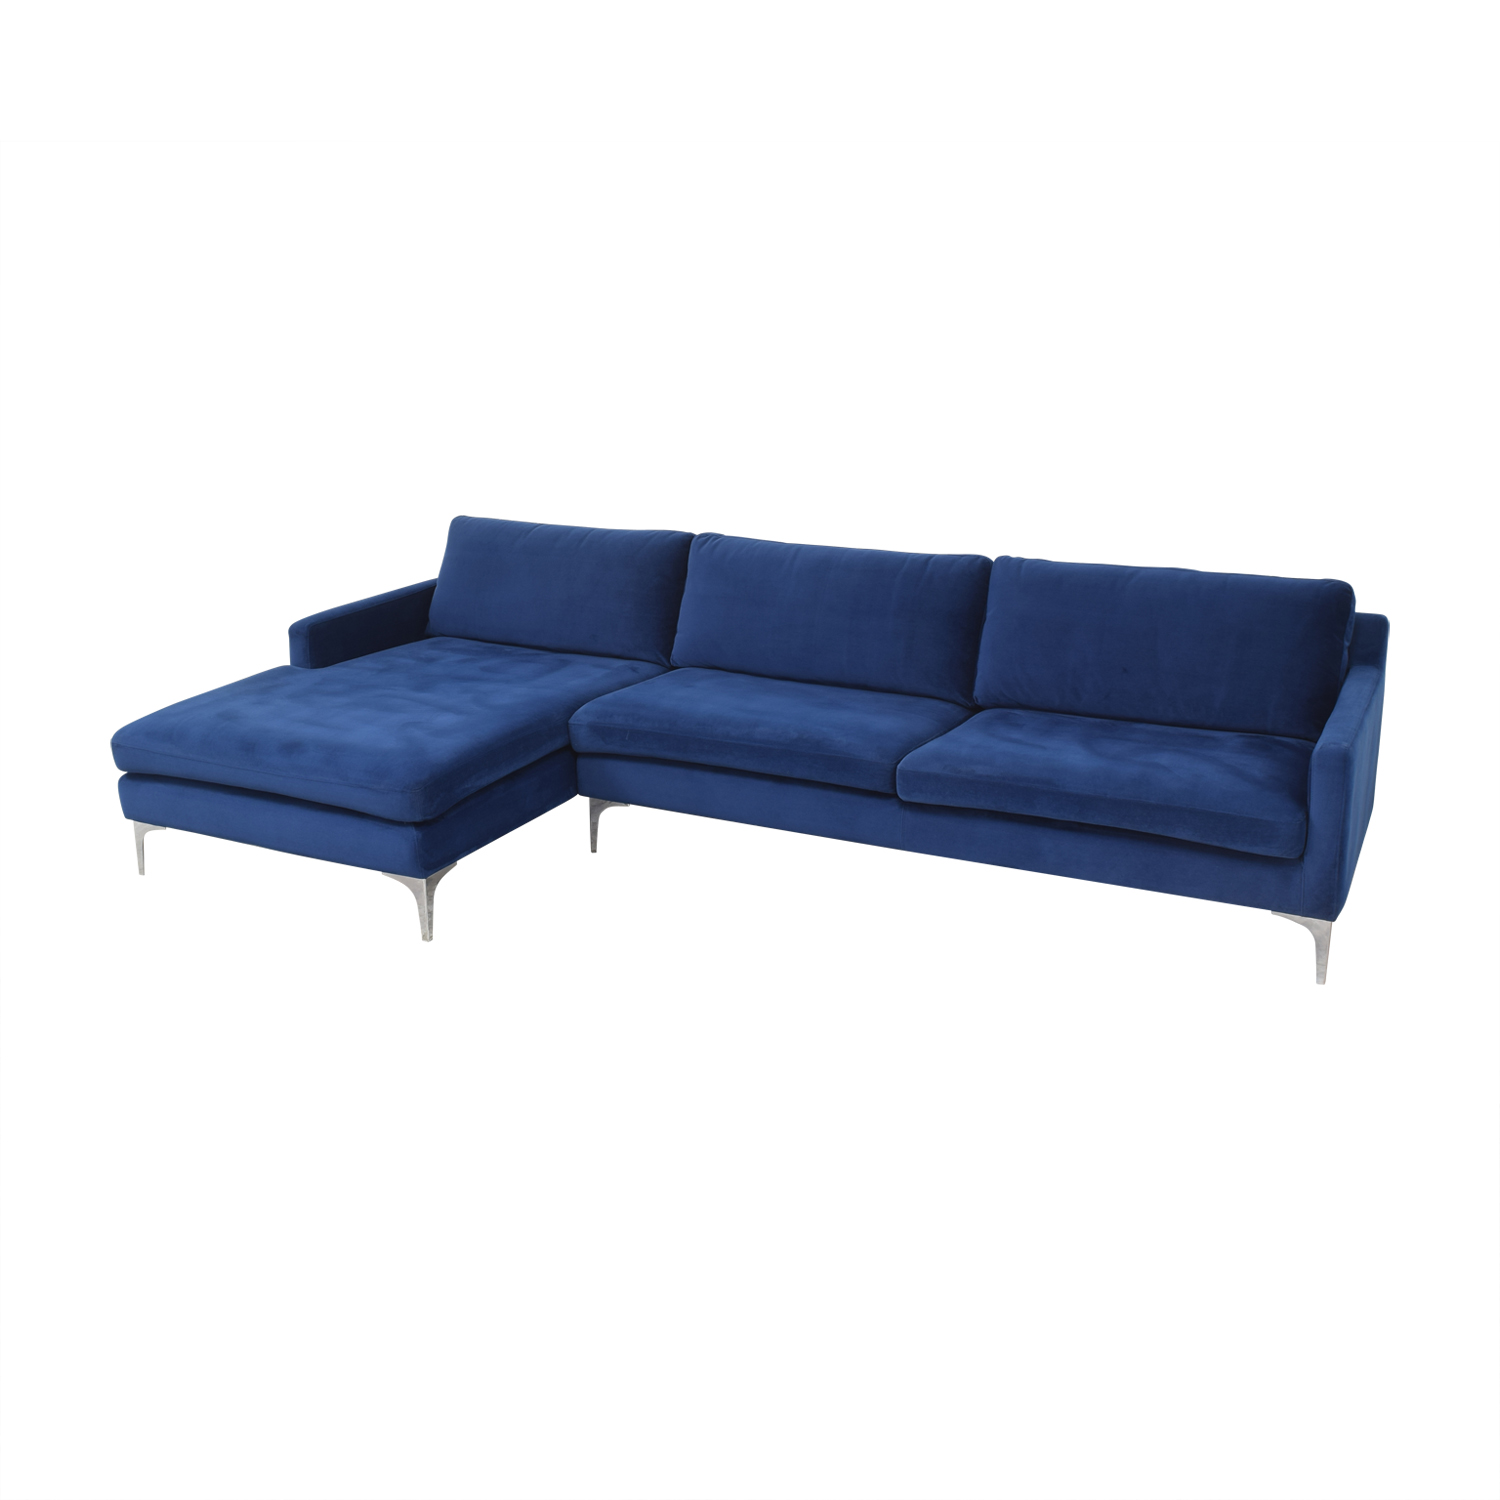 Joss & Main Joss & Main Bridgehampton Chaise Sectional Sofa used